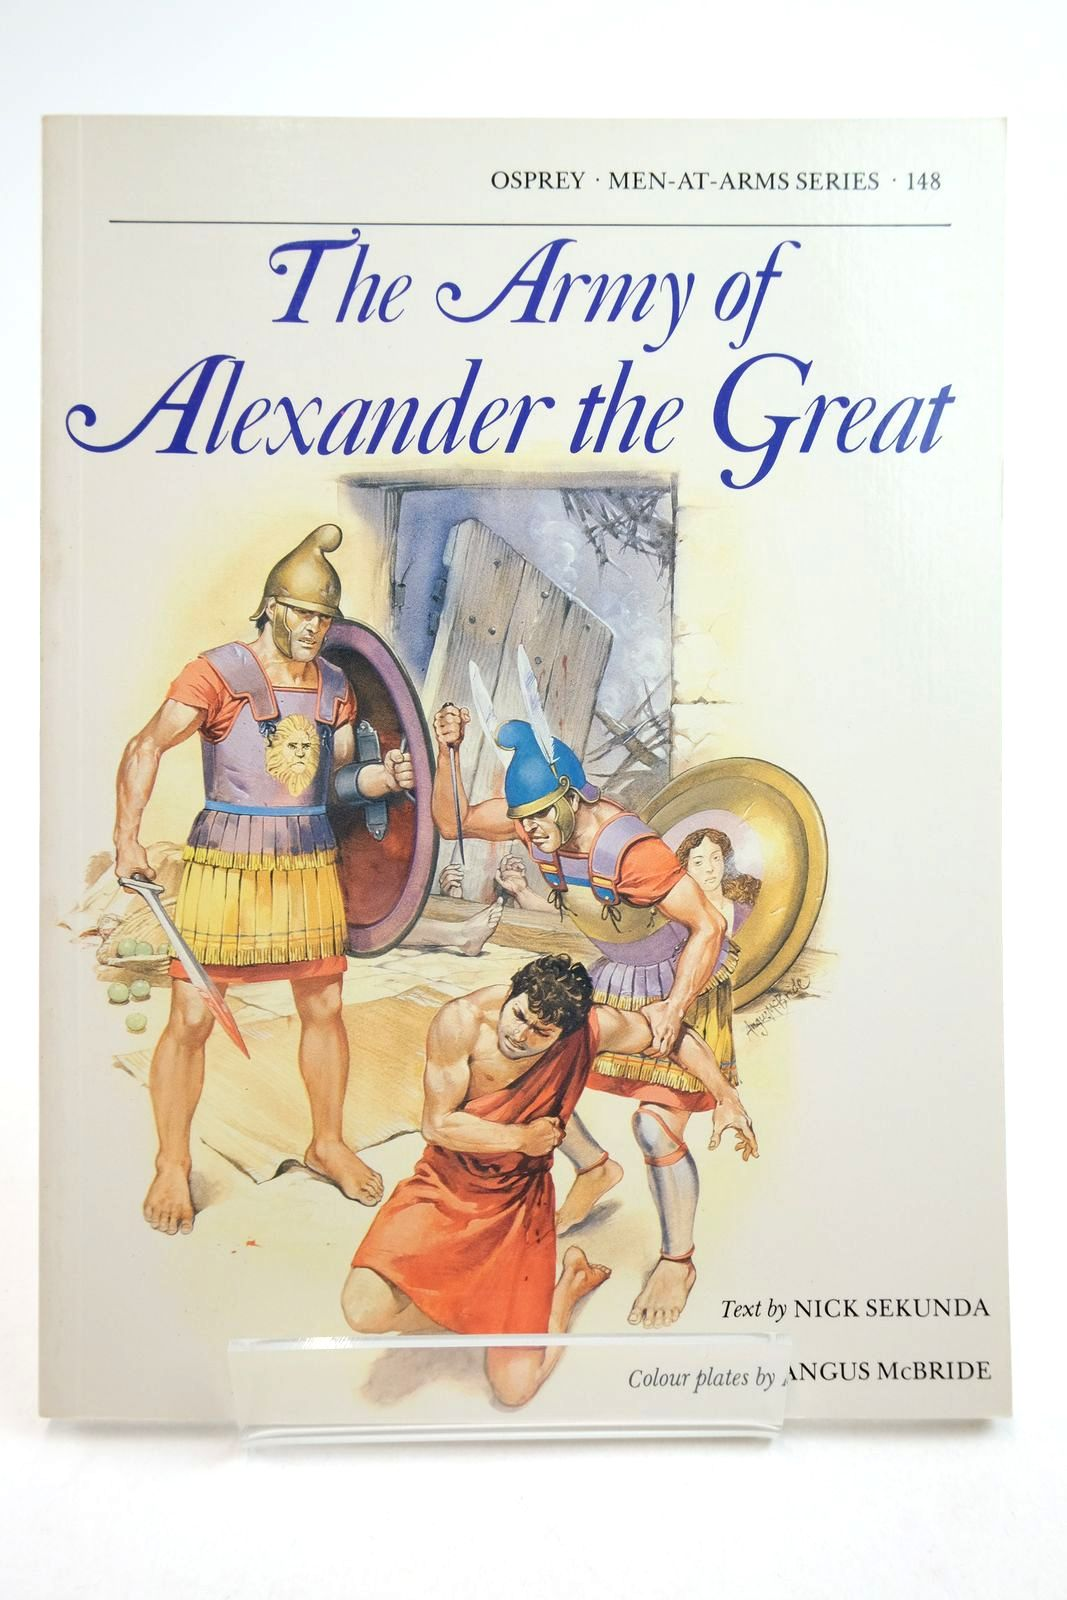 Photo of THE ARMY OF ALEXANDER THE GREAT (MEN-AT-ARMS) written by Sekunda, Nick illustrated by McBride, Angus published by Osprey Publishing (STOCK CODE: 2134744)  for sale by Stella & Rose's Books